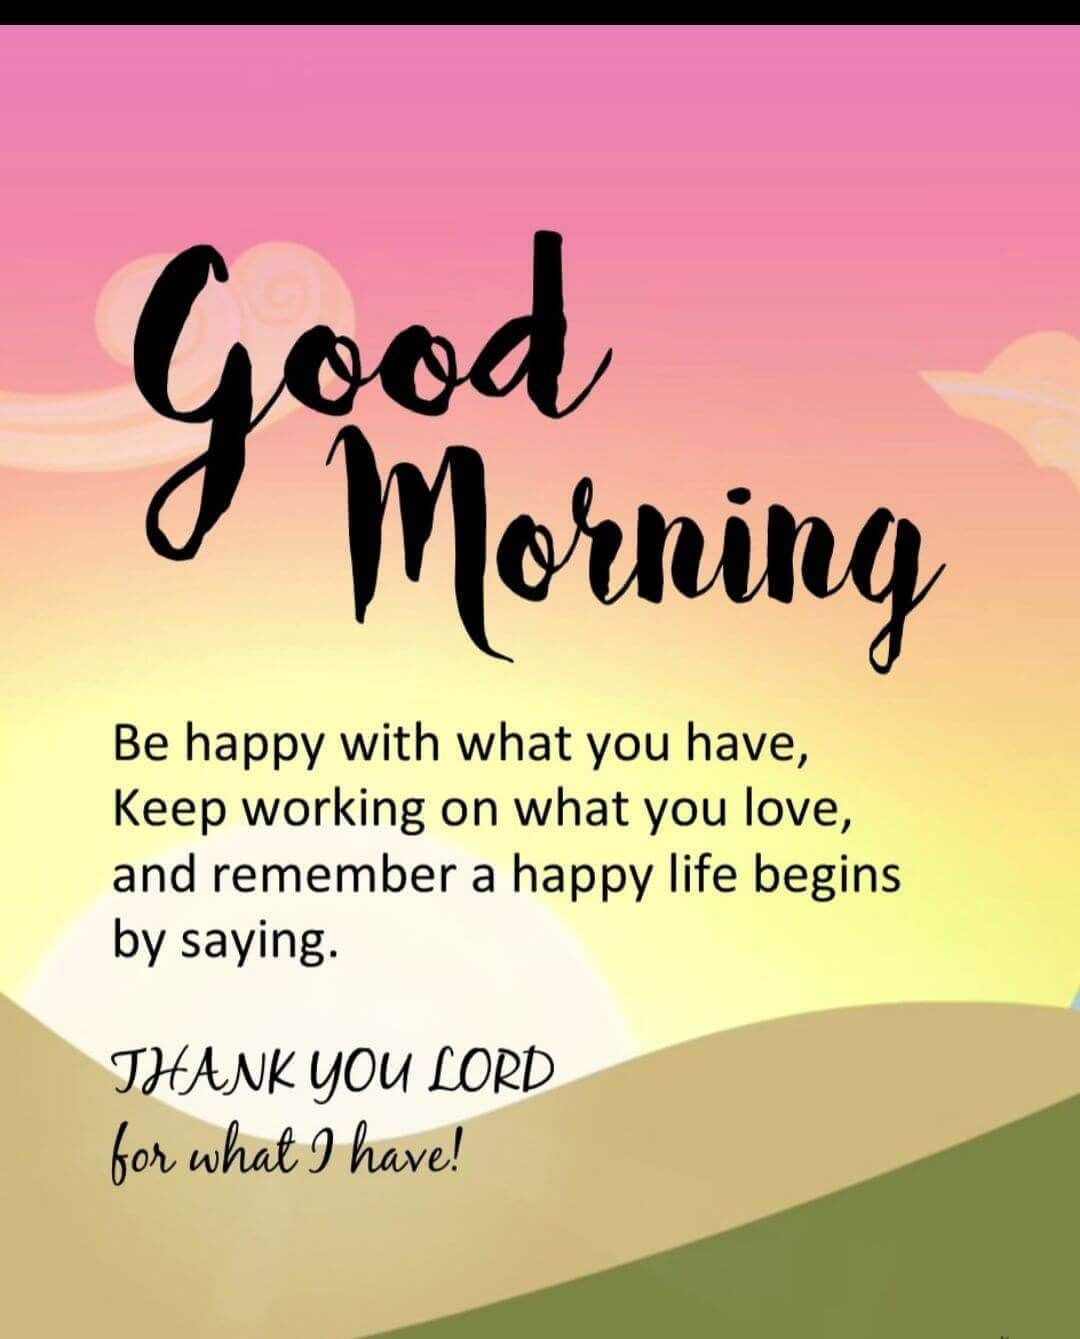 Good Morning Inspirational Quotes & Sayings With Images  Morning